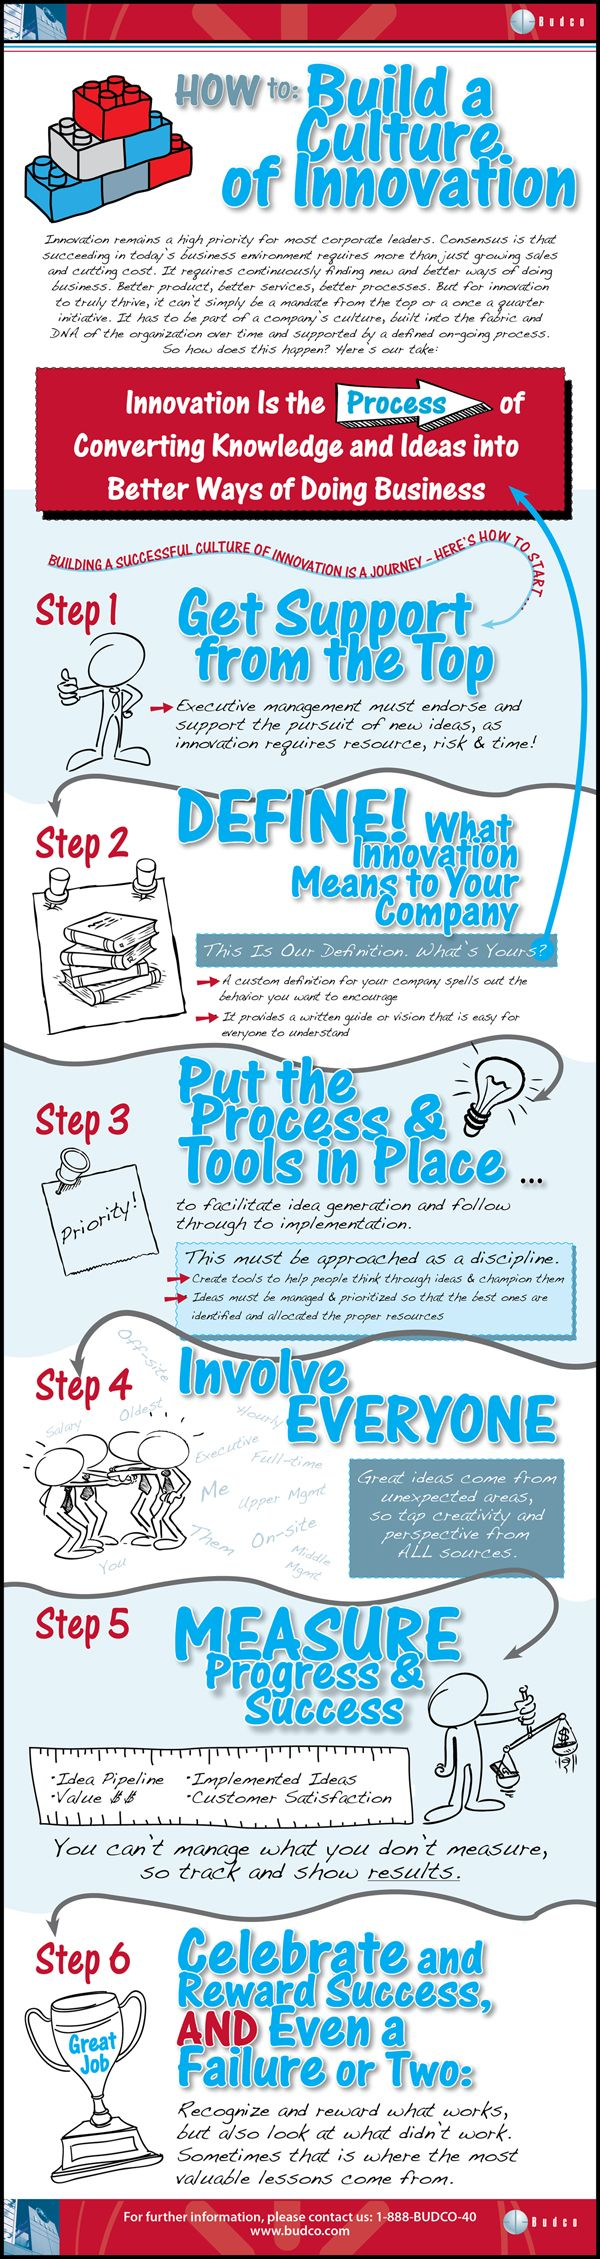 How to Build a Culture of Innovation